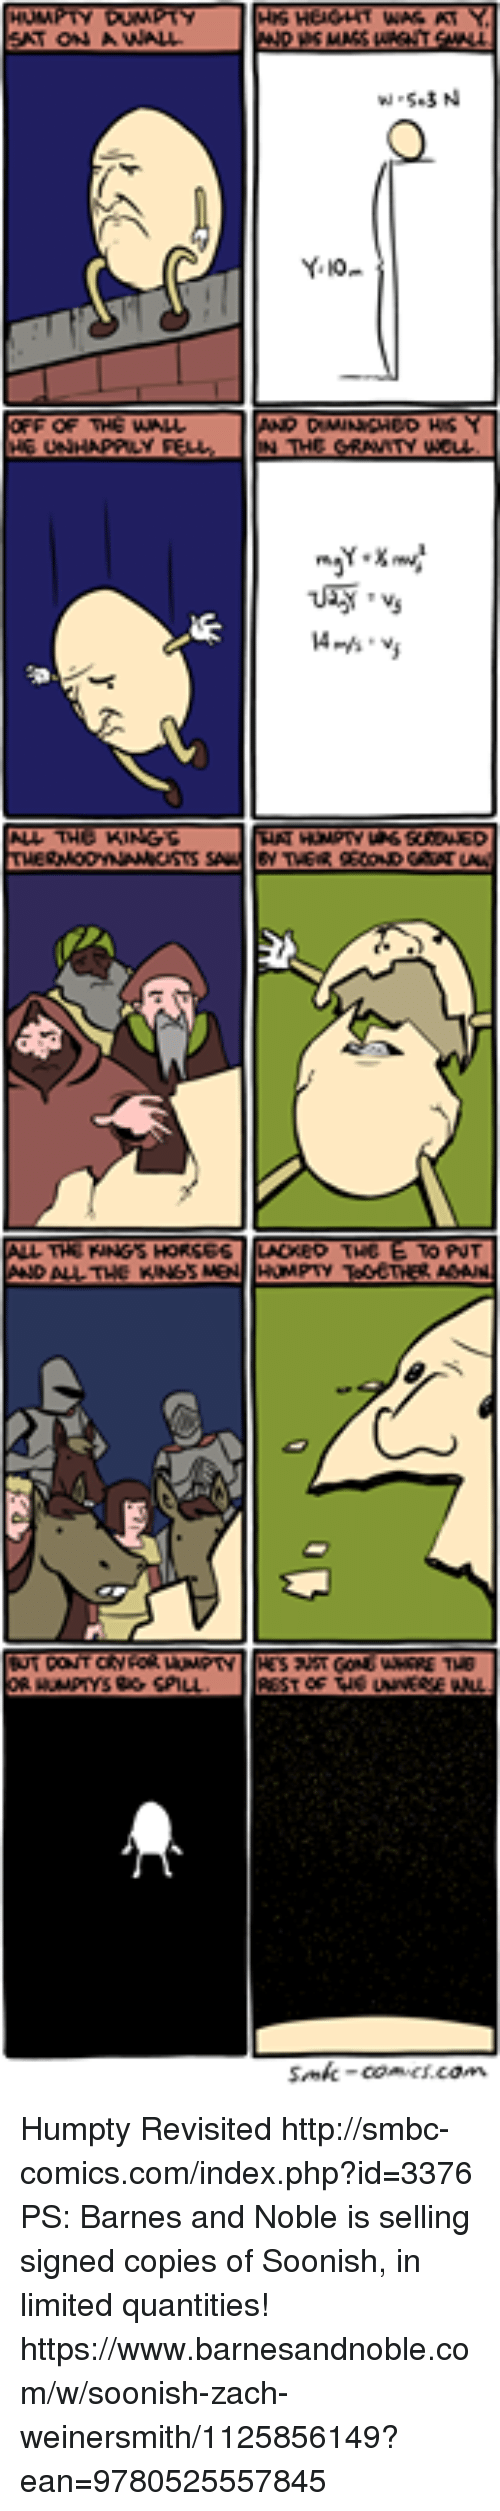 Memes, Http, and Limited: Humpty Revisited http://smbc-comics.com/index.php?id=3376  PS: Barnes and Noble is selling signed copies of Soonish, in limited quantities! https://www.barnesandnoble.com/w/soonish-zach-weinersmith/1125856149?ean=9780525557845